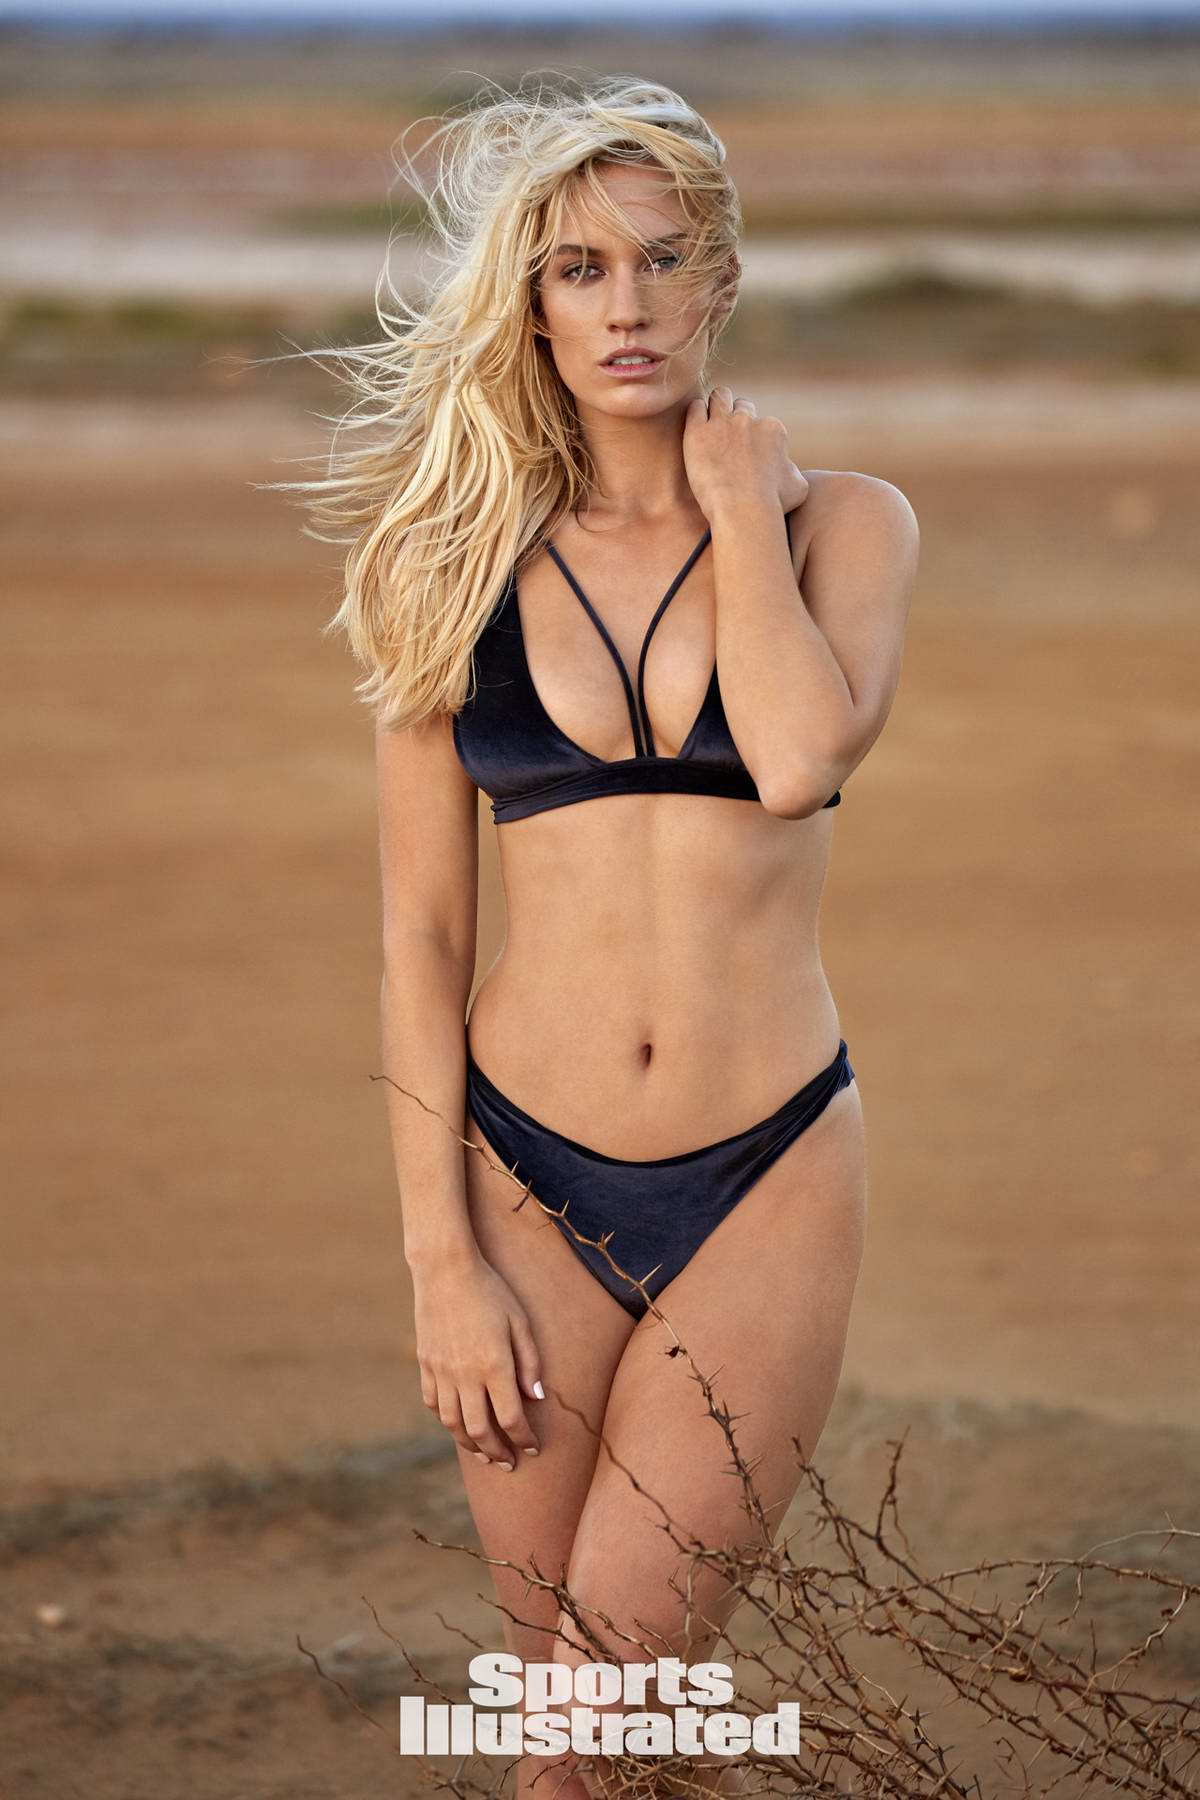 Paige Spiranac in Sports Illustrated Swimsuit Issue 2018